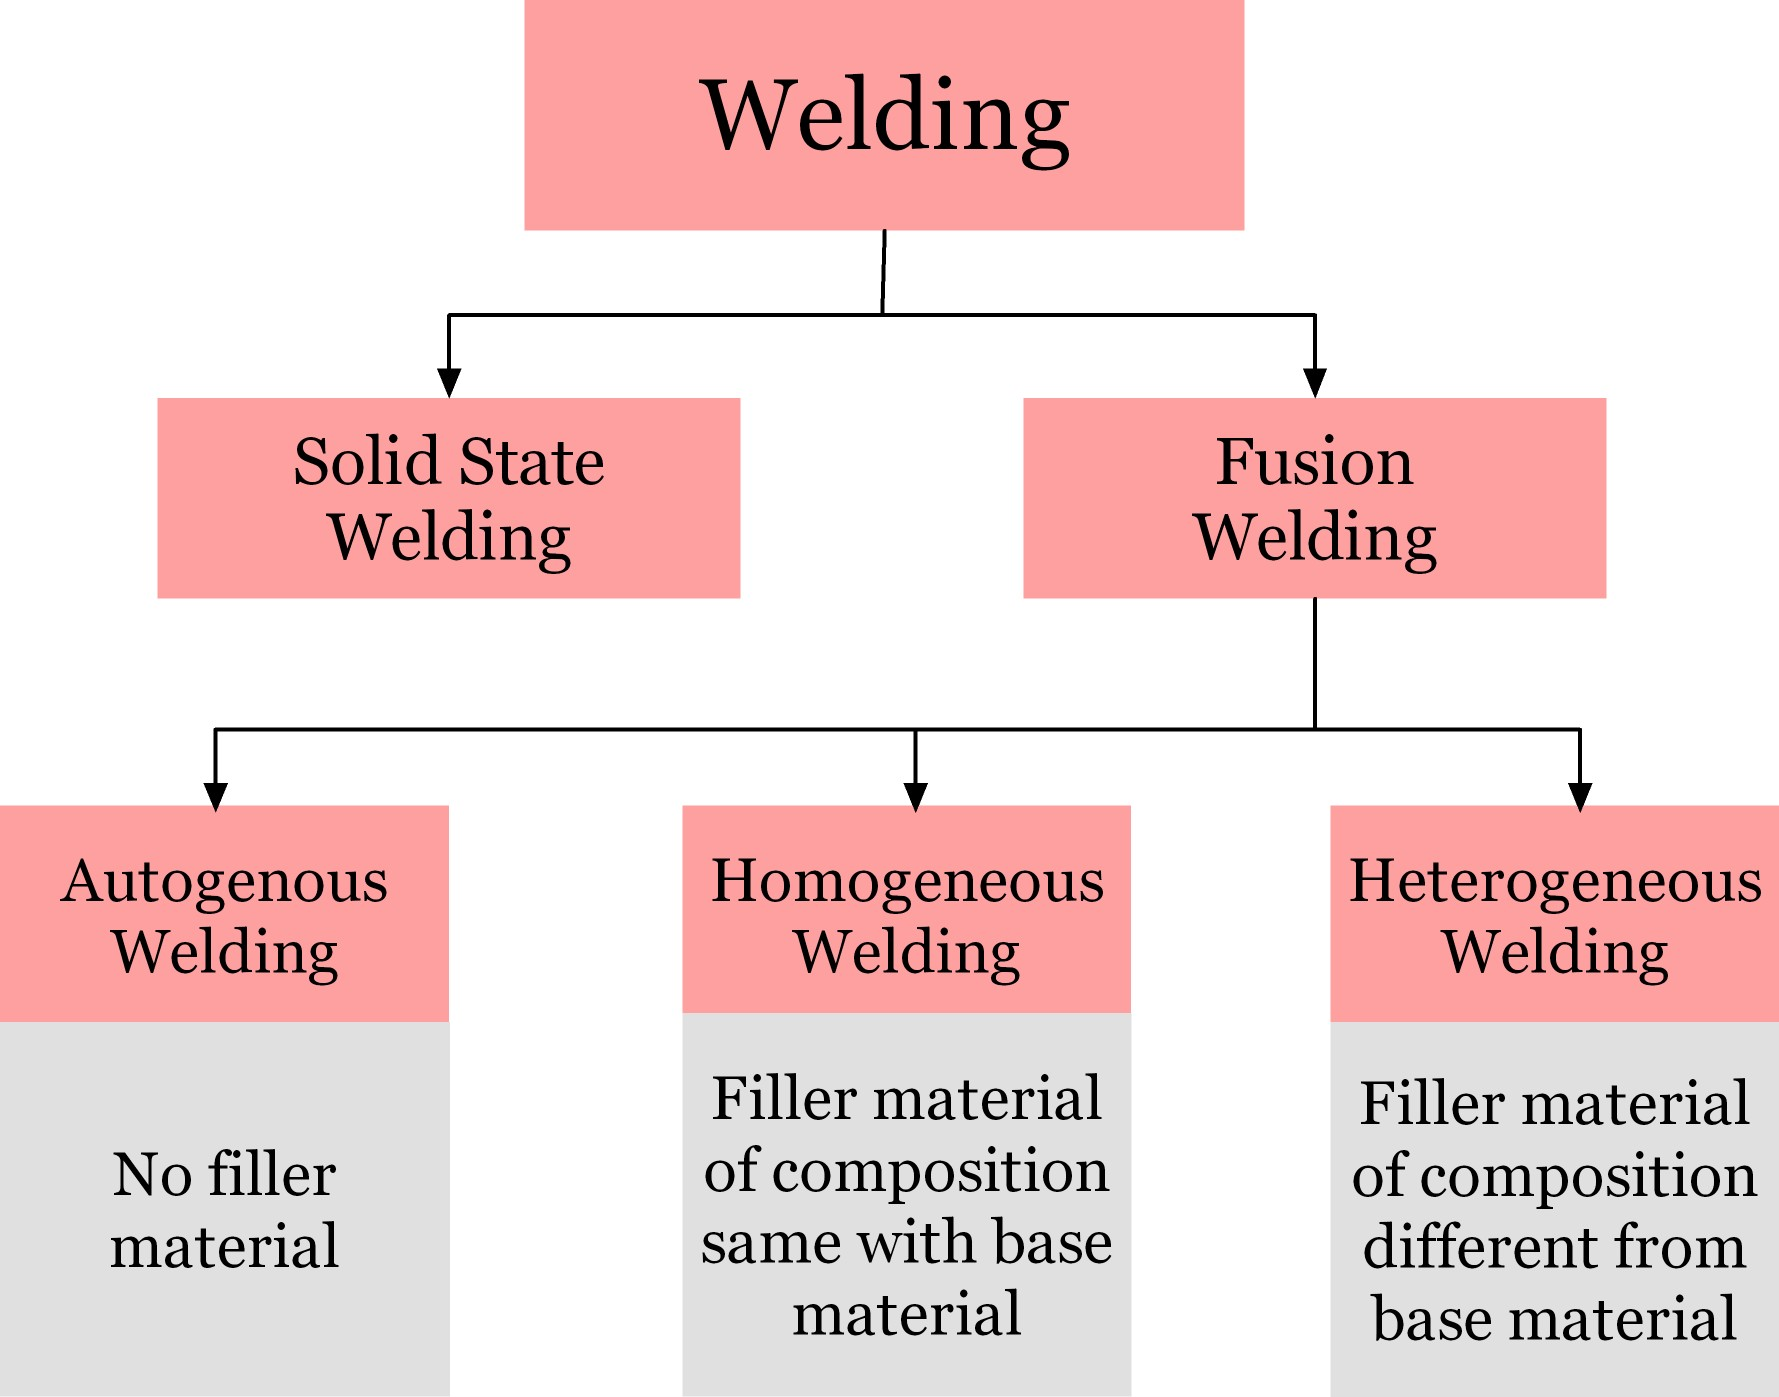 Autogenous, Homogeneous and Heterogeneous welding